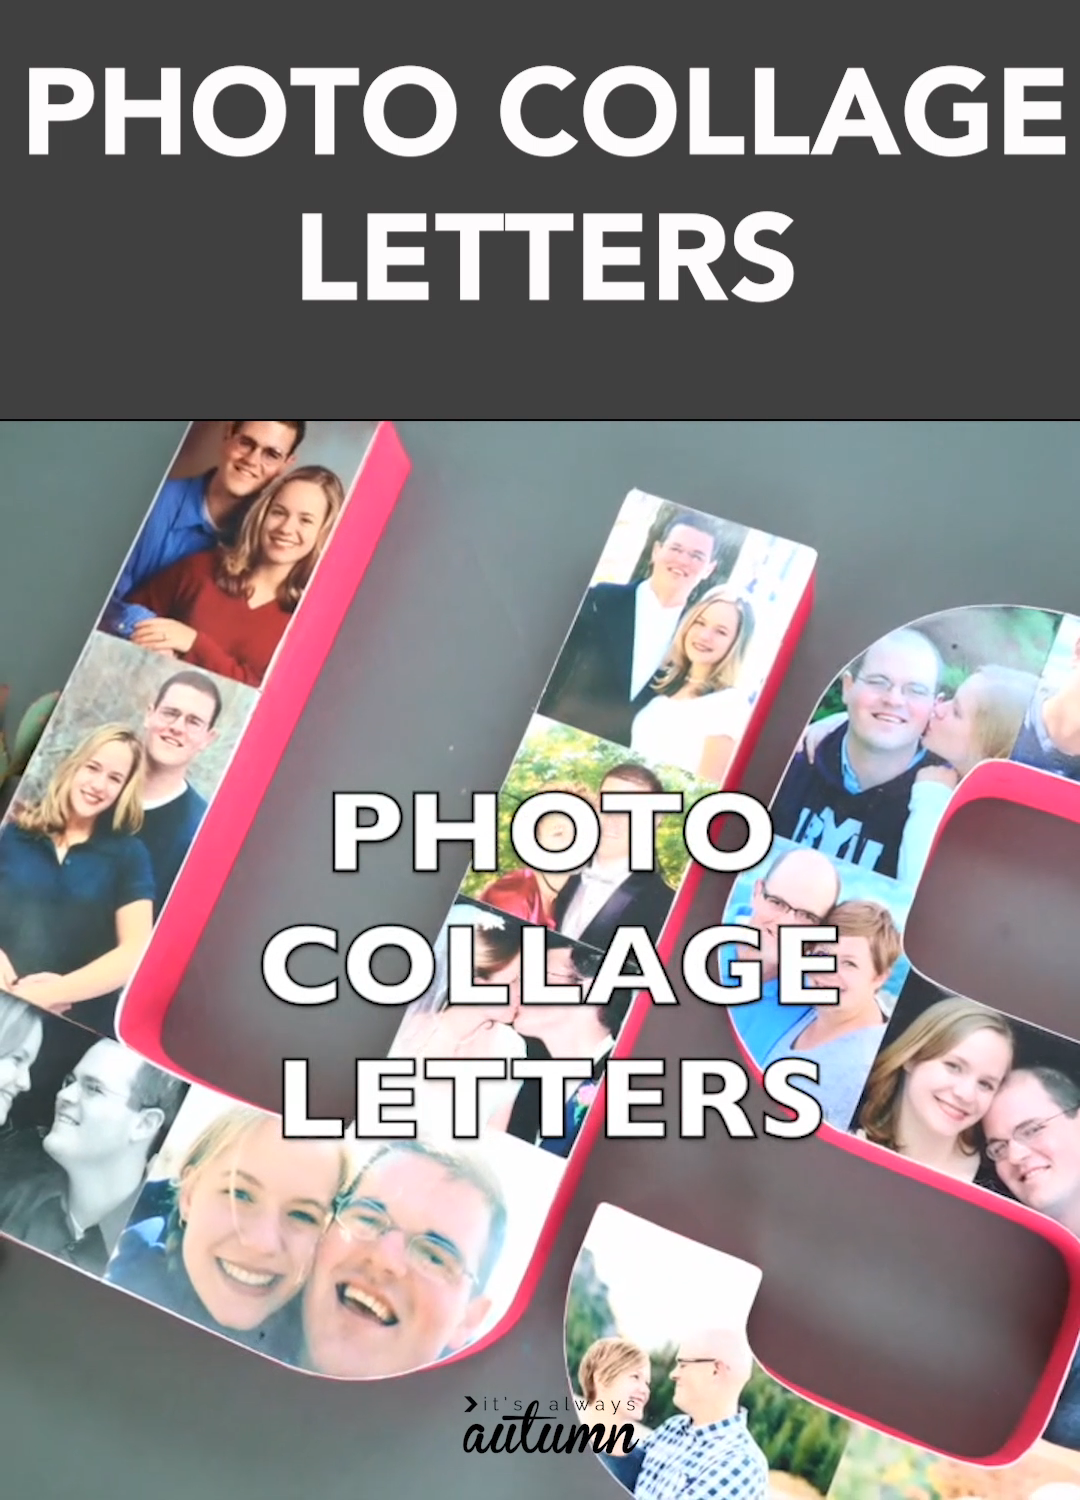 Photo collage letters are a fun way to showcase your favorite pictures! Great DIY gift idea.